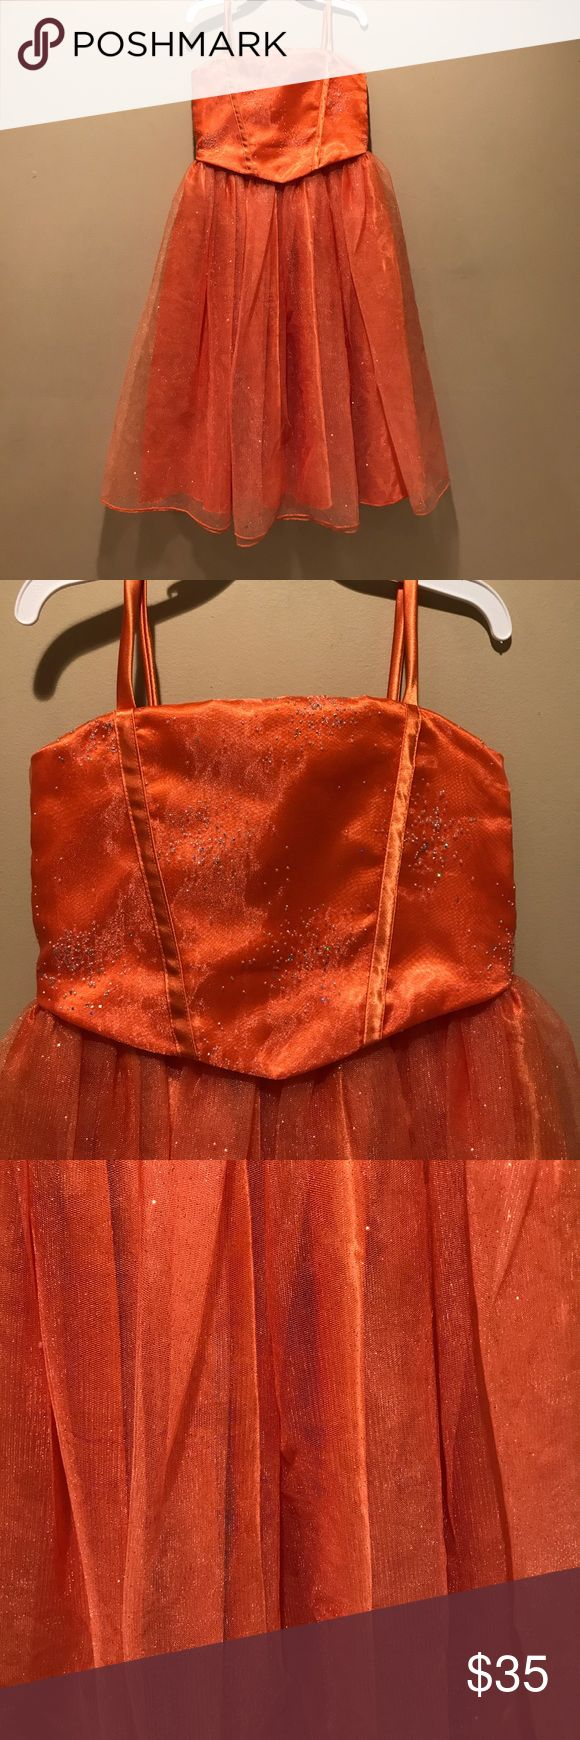 Girls Party Dress size 4 Girls Party Dress size 4 in a lovely orange with sparkly accents.  Perfect for a party, formal, or dress-up. Dresses